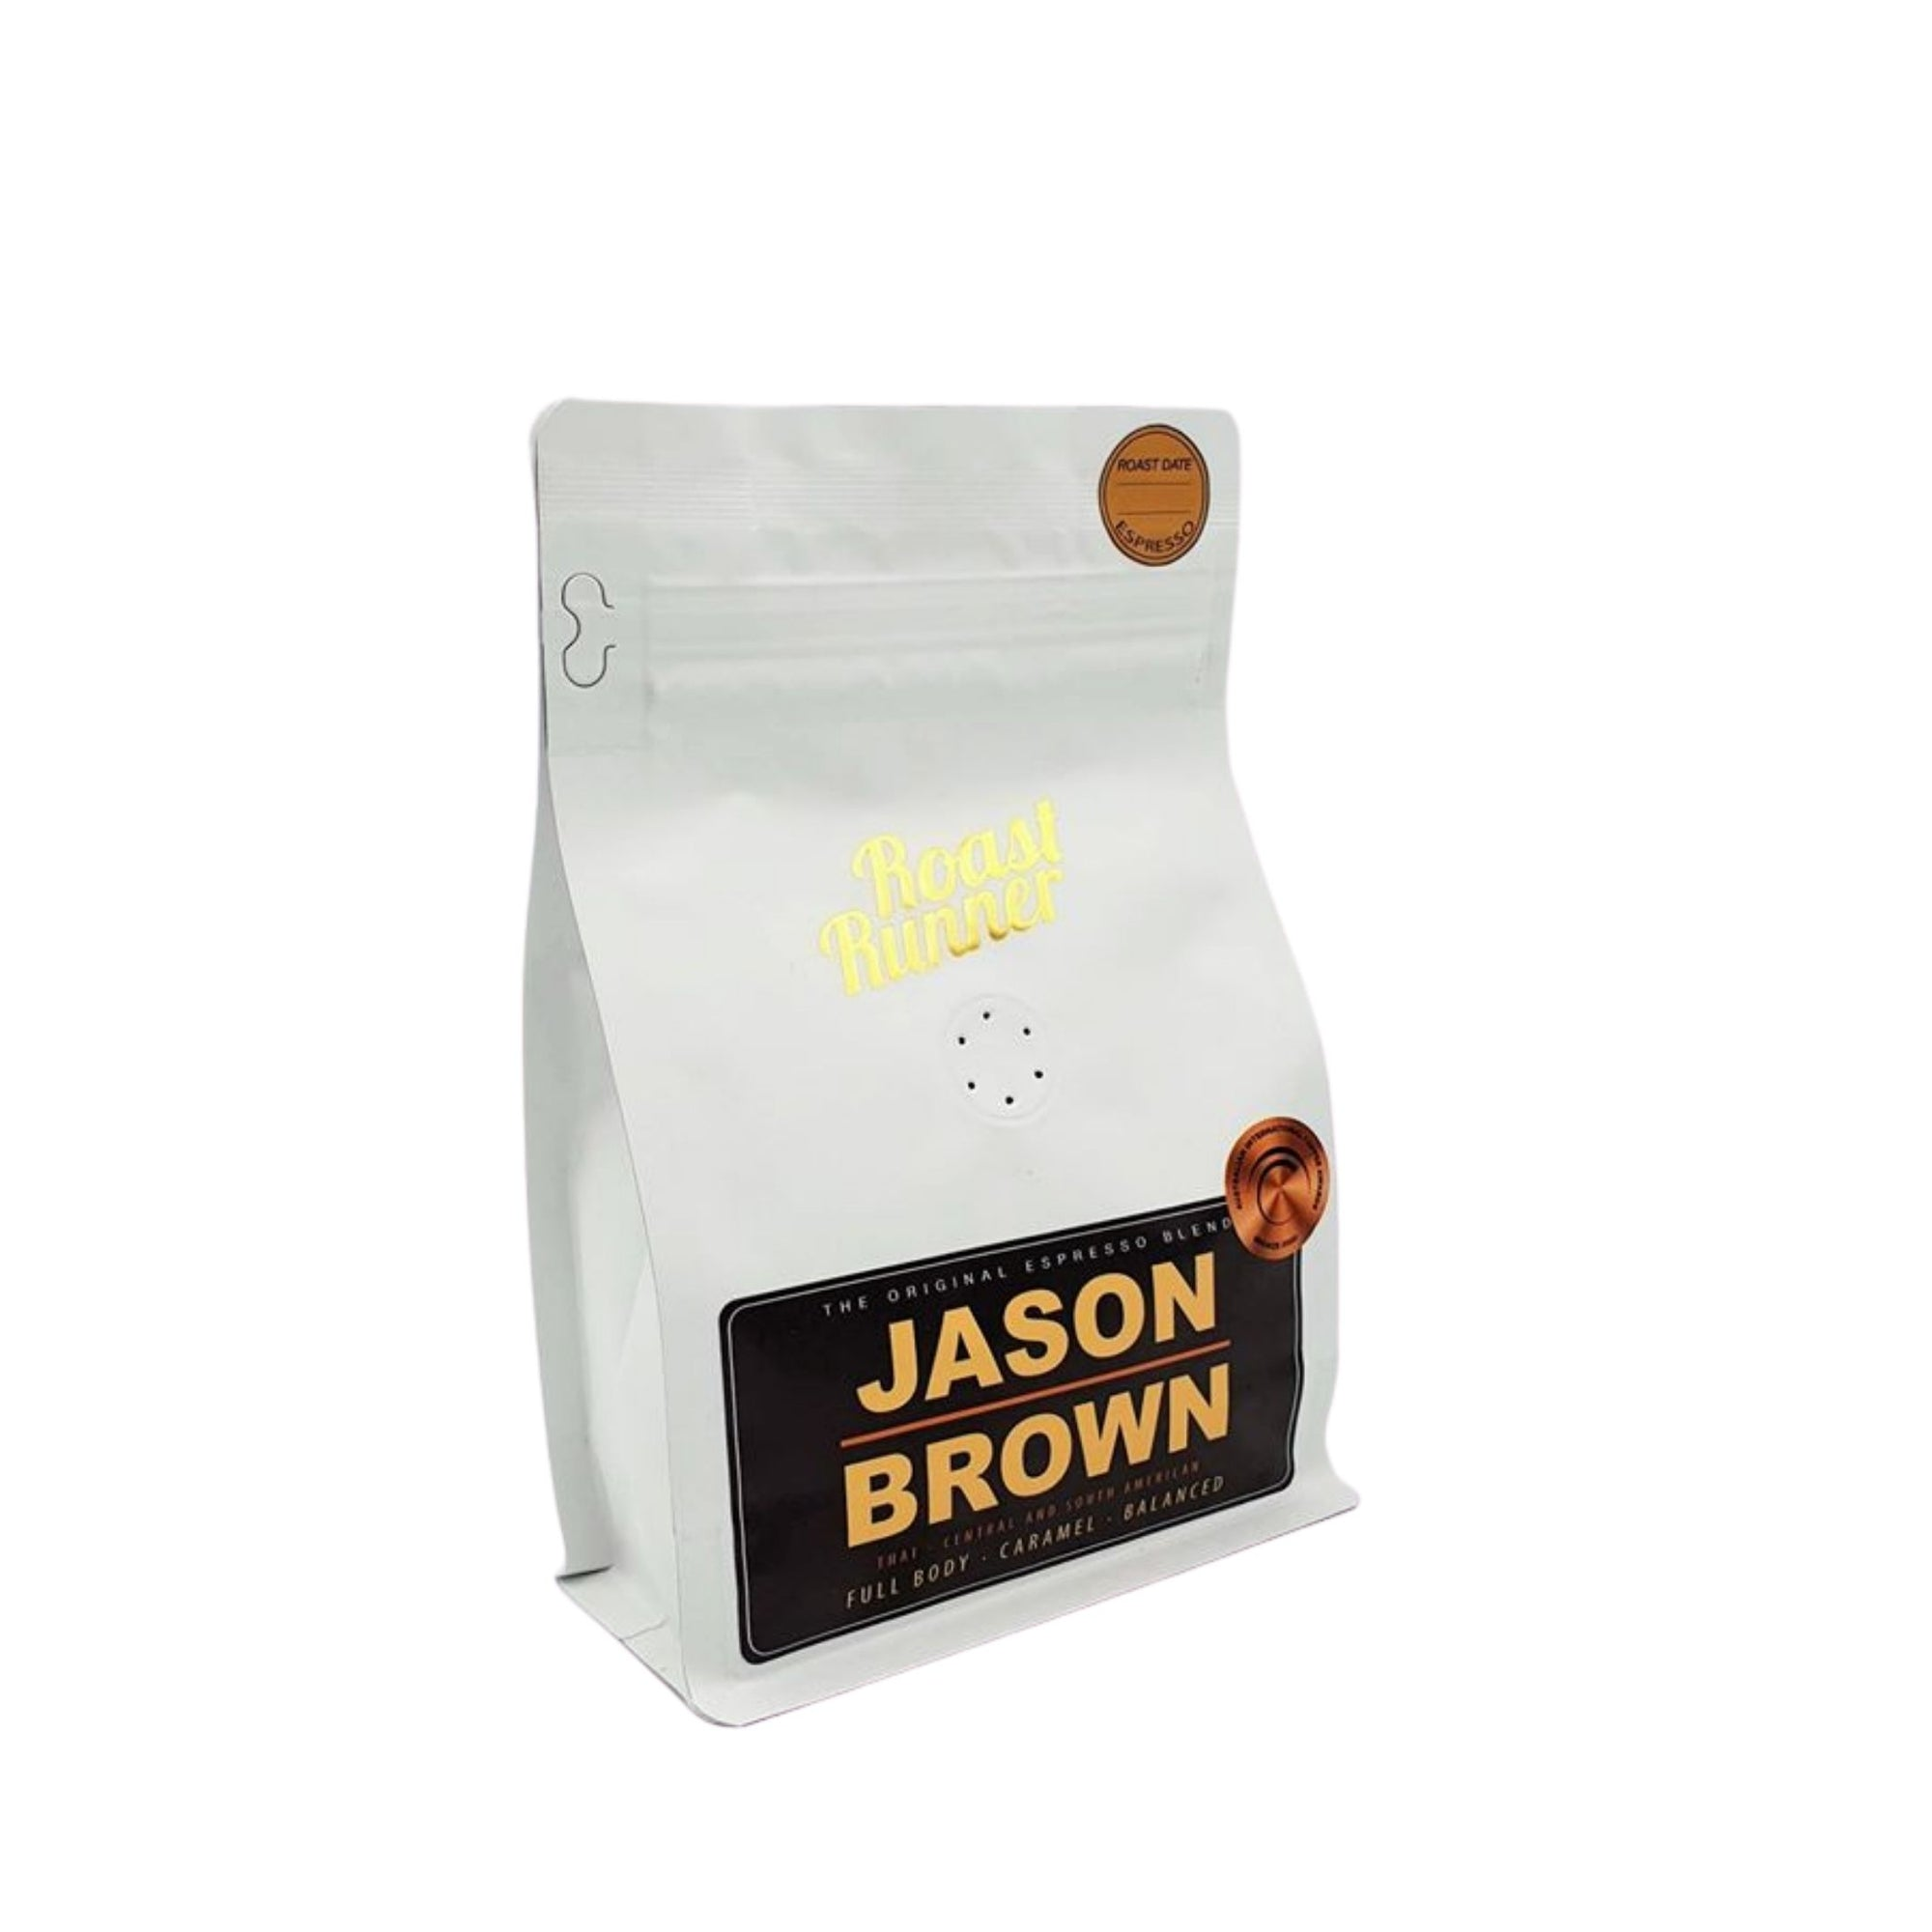 JASON BROWN (BRONZE MEDAL 2019-2020) 250g